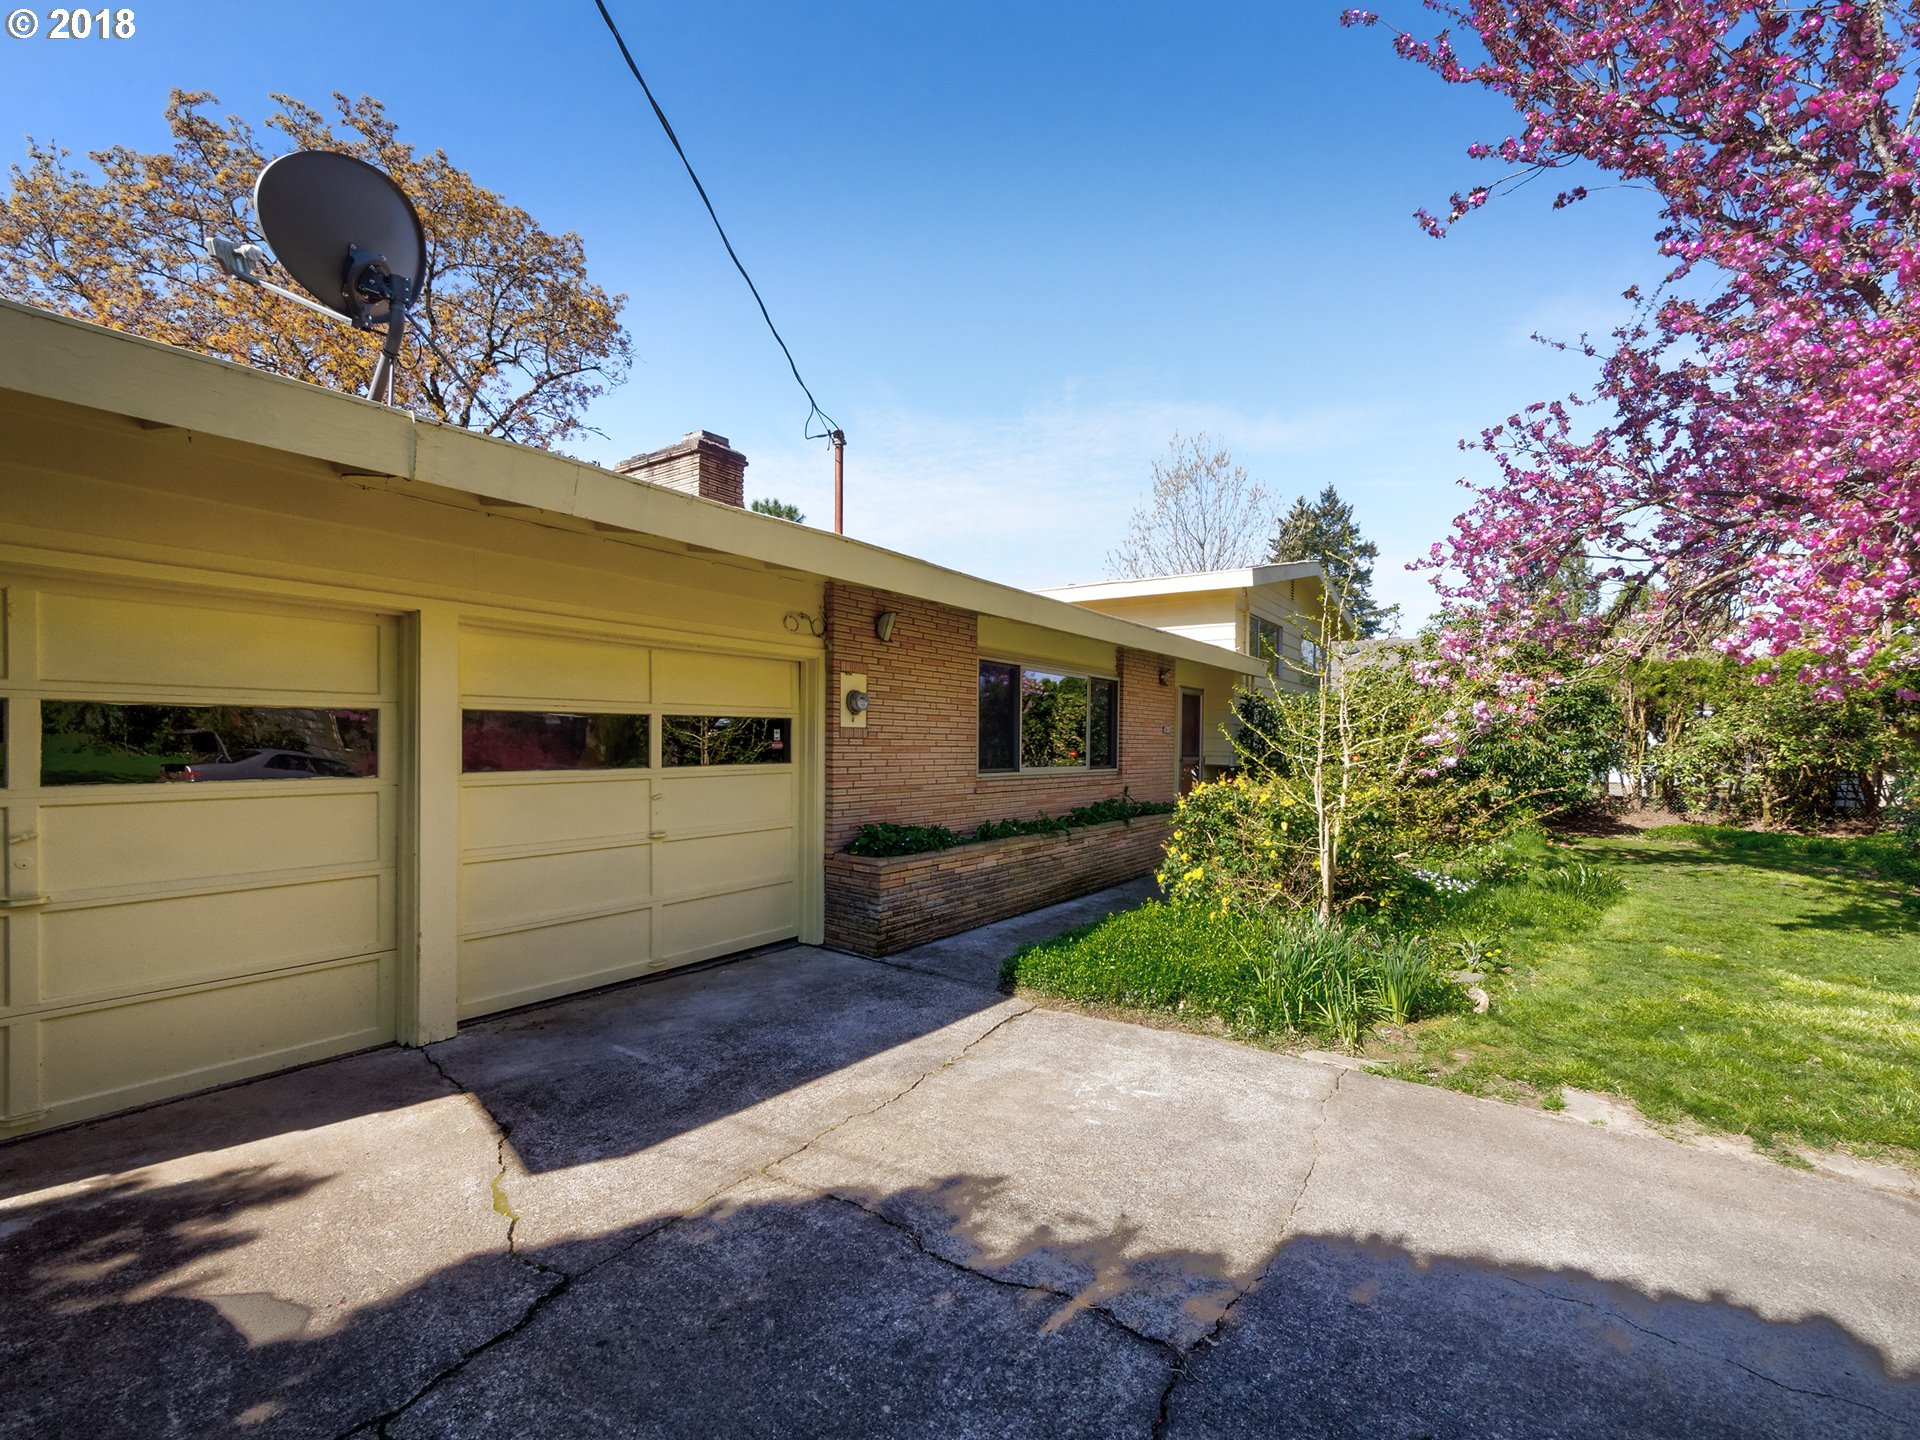 3434 sq. ft 4 bedrooms 2 bathrooms  House For Sale, Milwaukie, OR